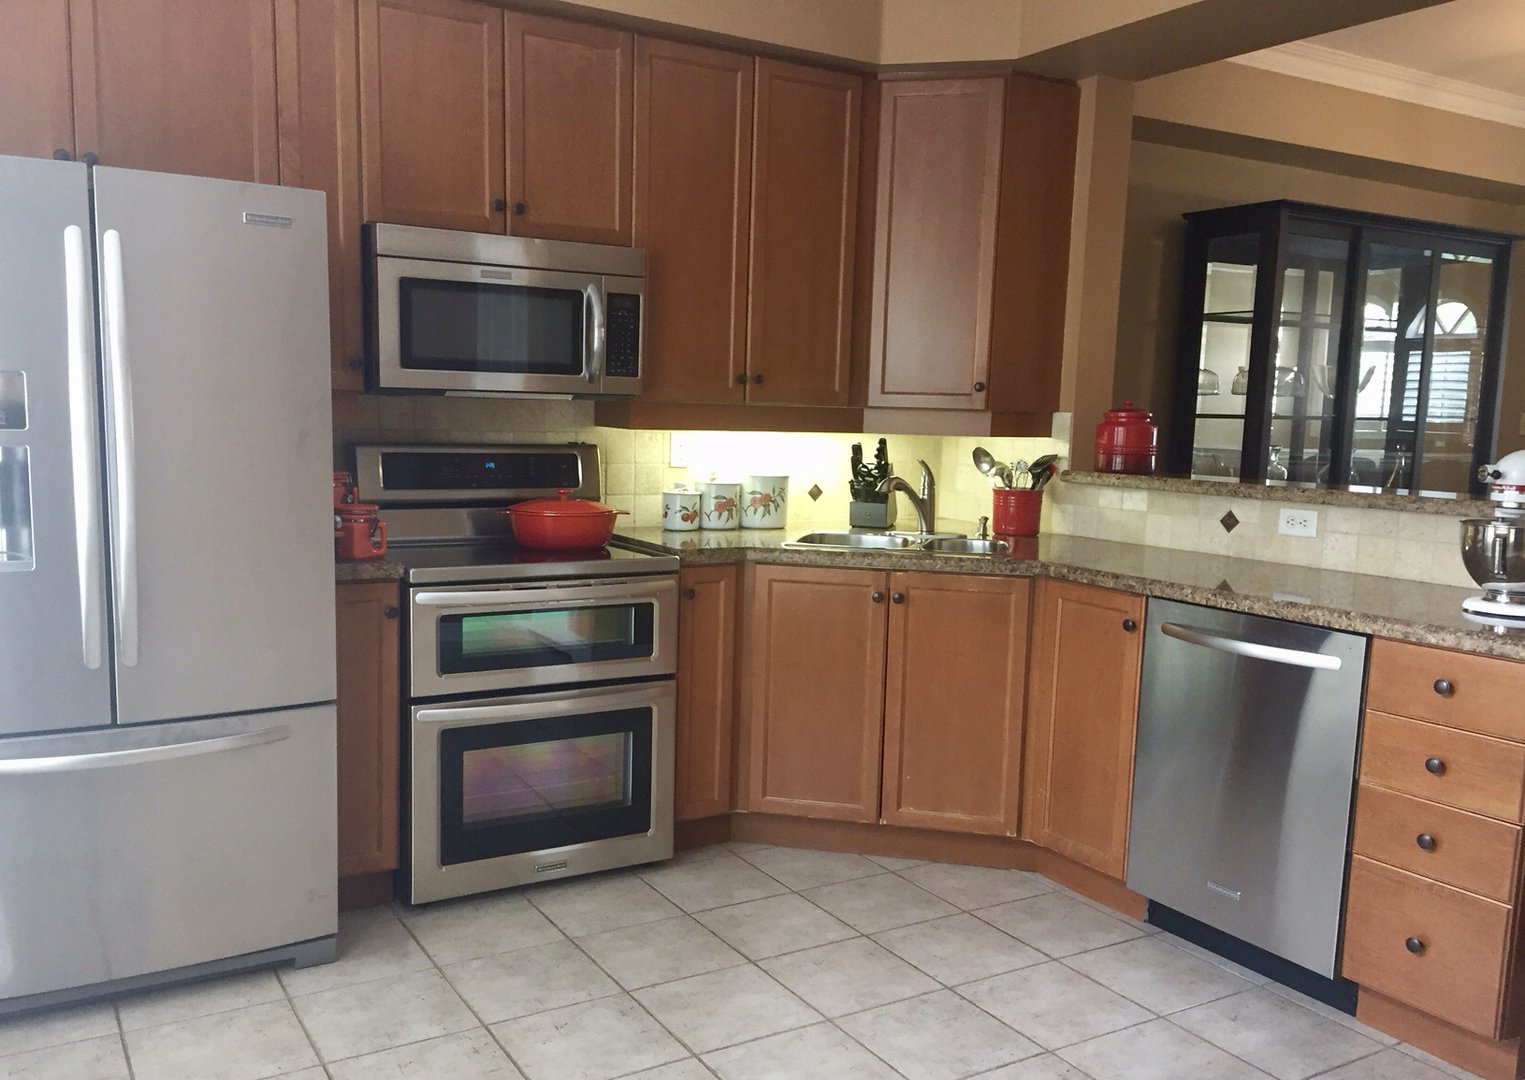 House for rent at 60 Superior Creek Ln, Etobicoke, ON. This is the kitchen with stainless steel and tile floor.